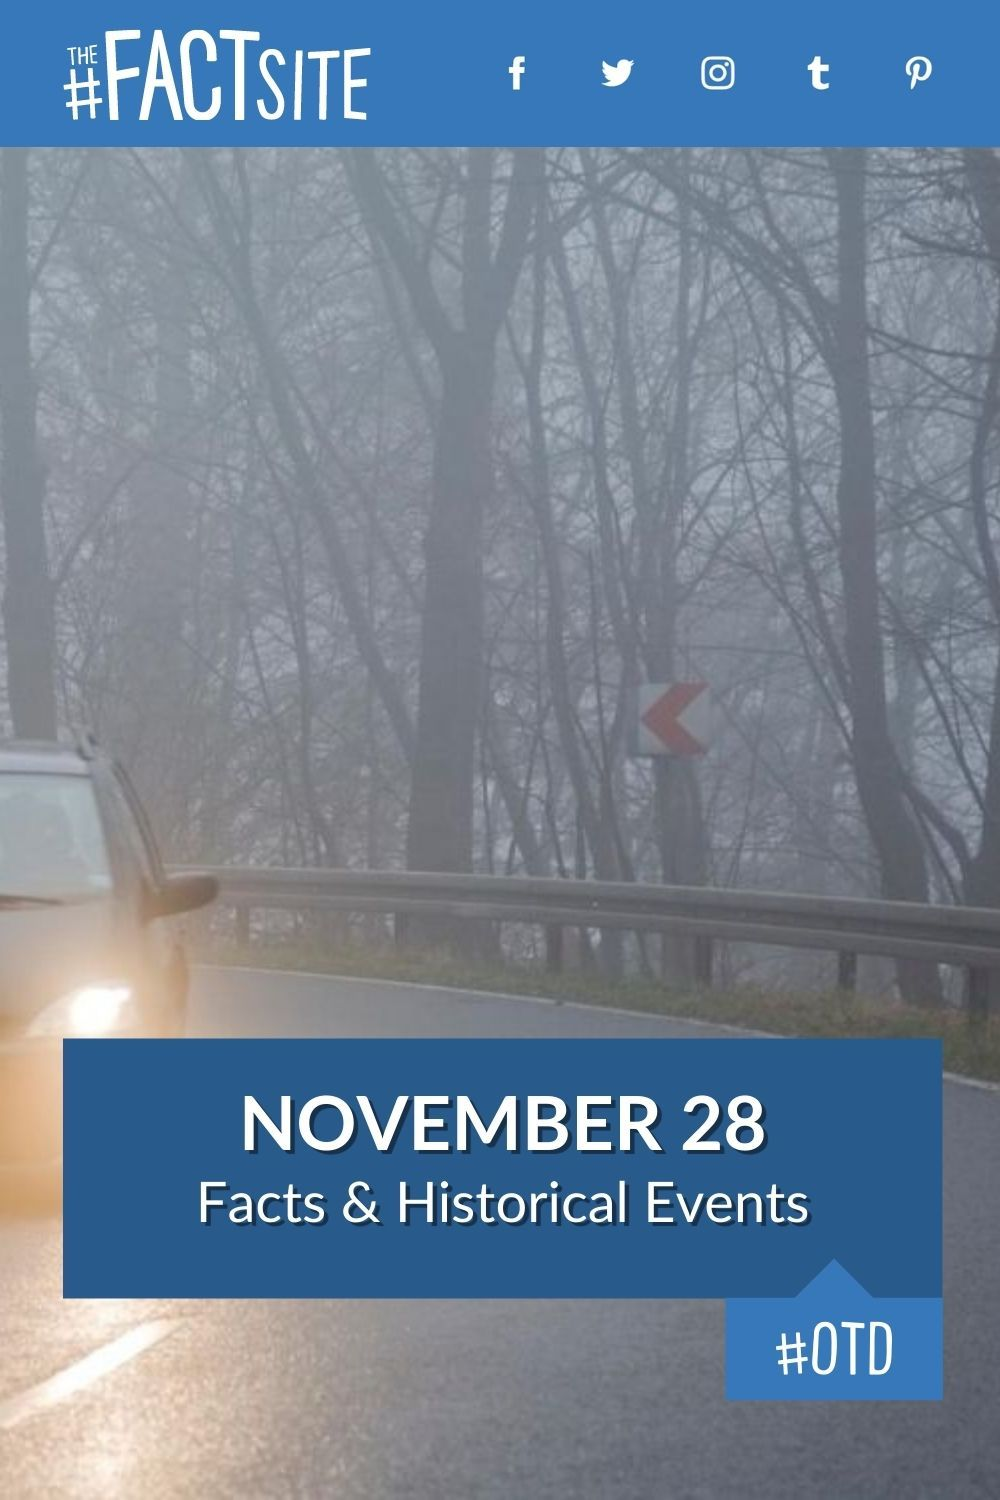 Facts & Historic Events That Happened on November 28